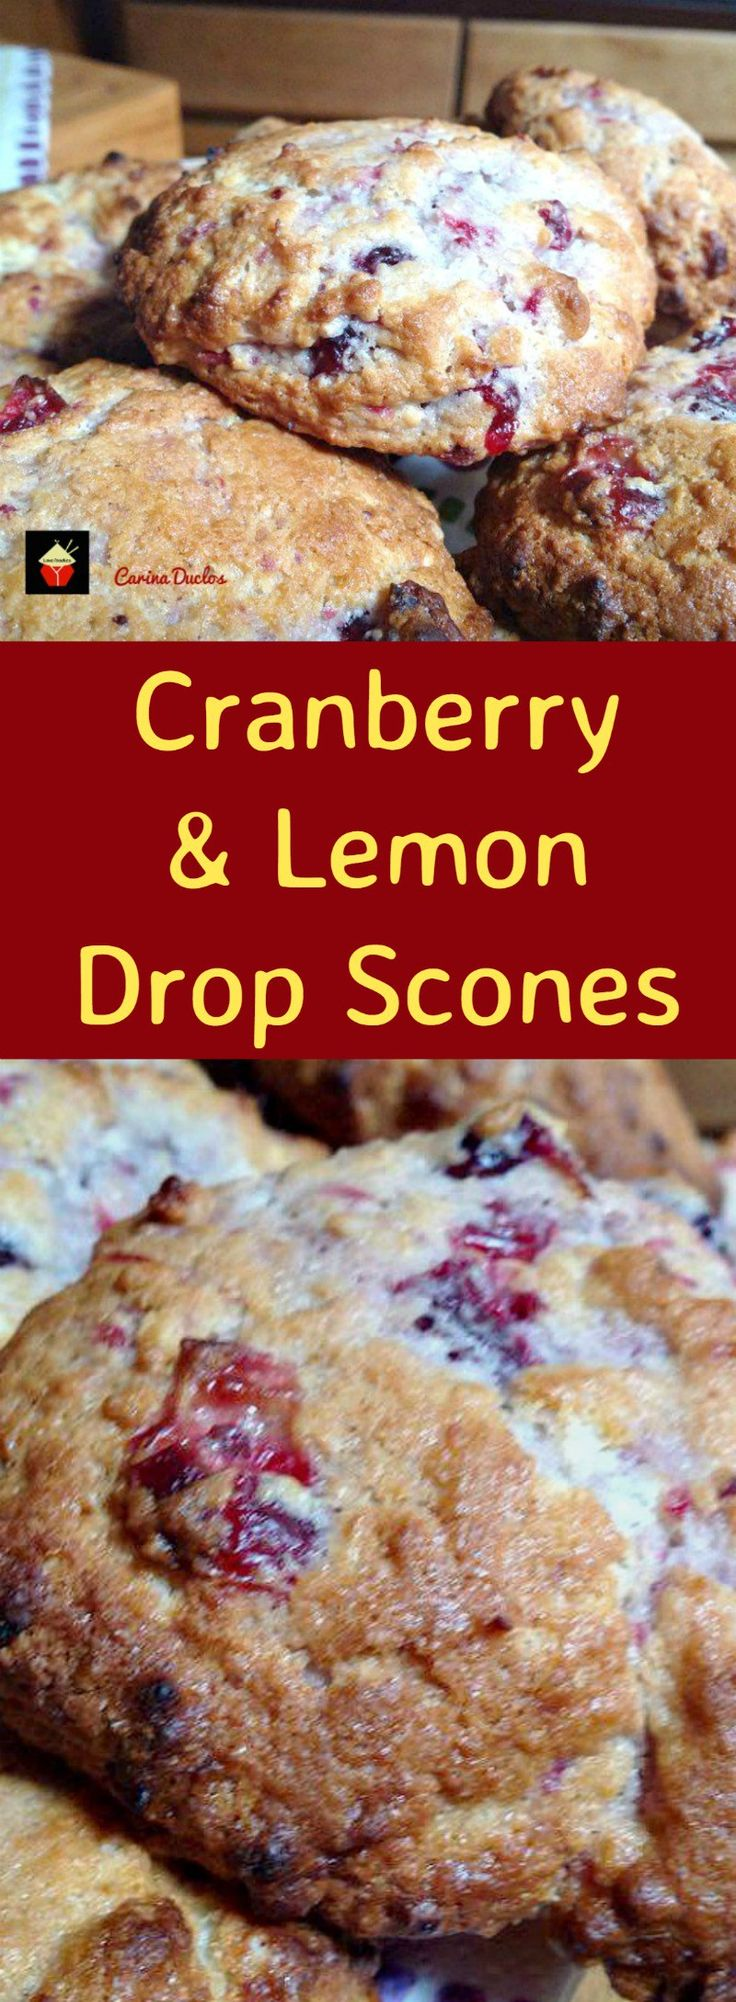 Cranberry and Lemon Drop Scones. These are a wonderful little scone using left over cranberry sauce. They're great tasting, soft and moist. Delicious served warm or cold with a spread of butter! Only take minutes to make and incredibly easy!   Lovefoodies.com